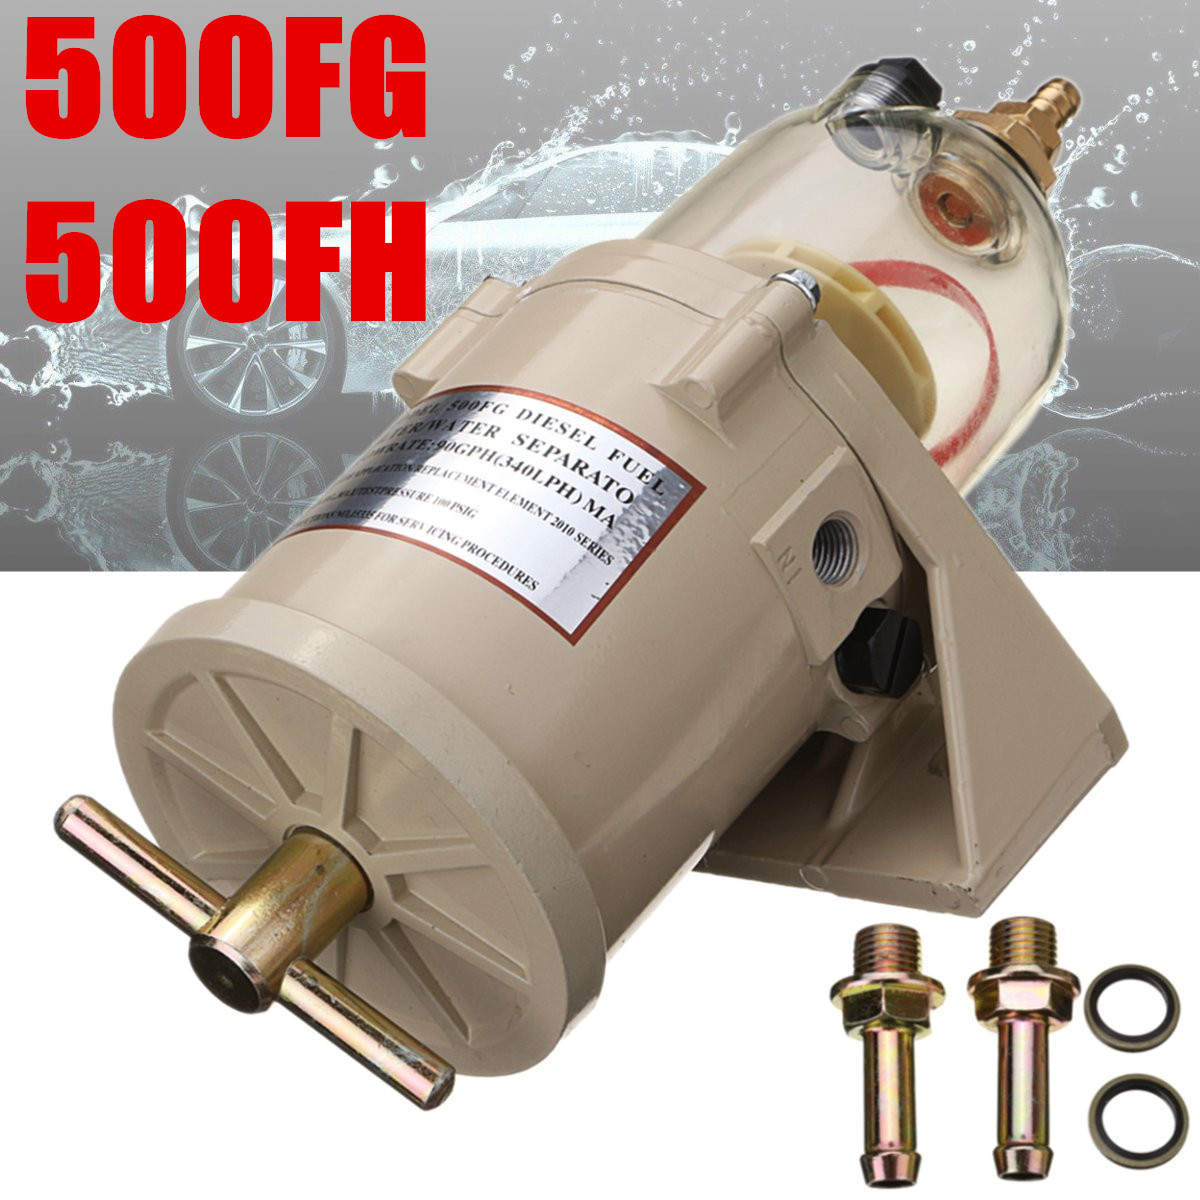 New 500FG 500FH Diesel Marine Boat Filter Water Separator Fuel Filter Water Separator Fit For Diesel